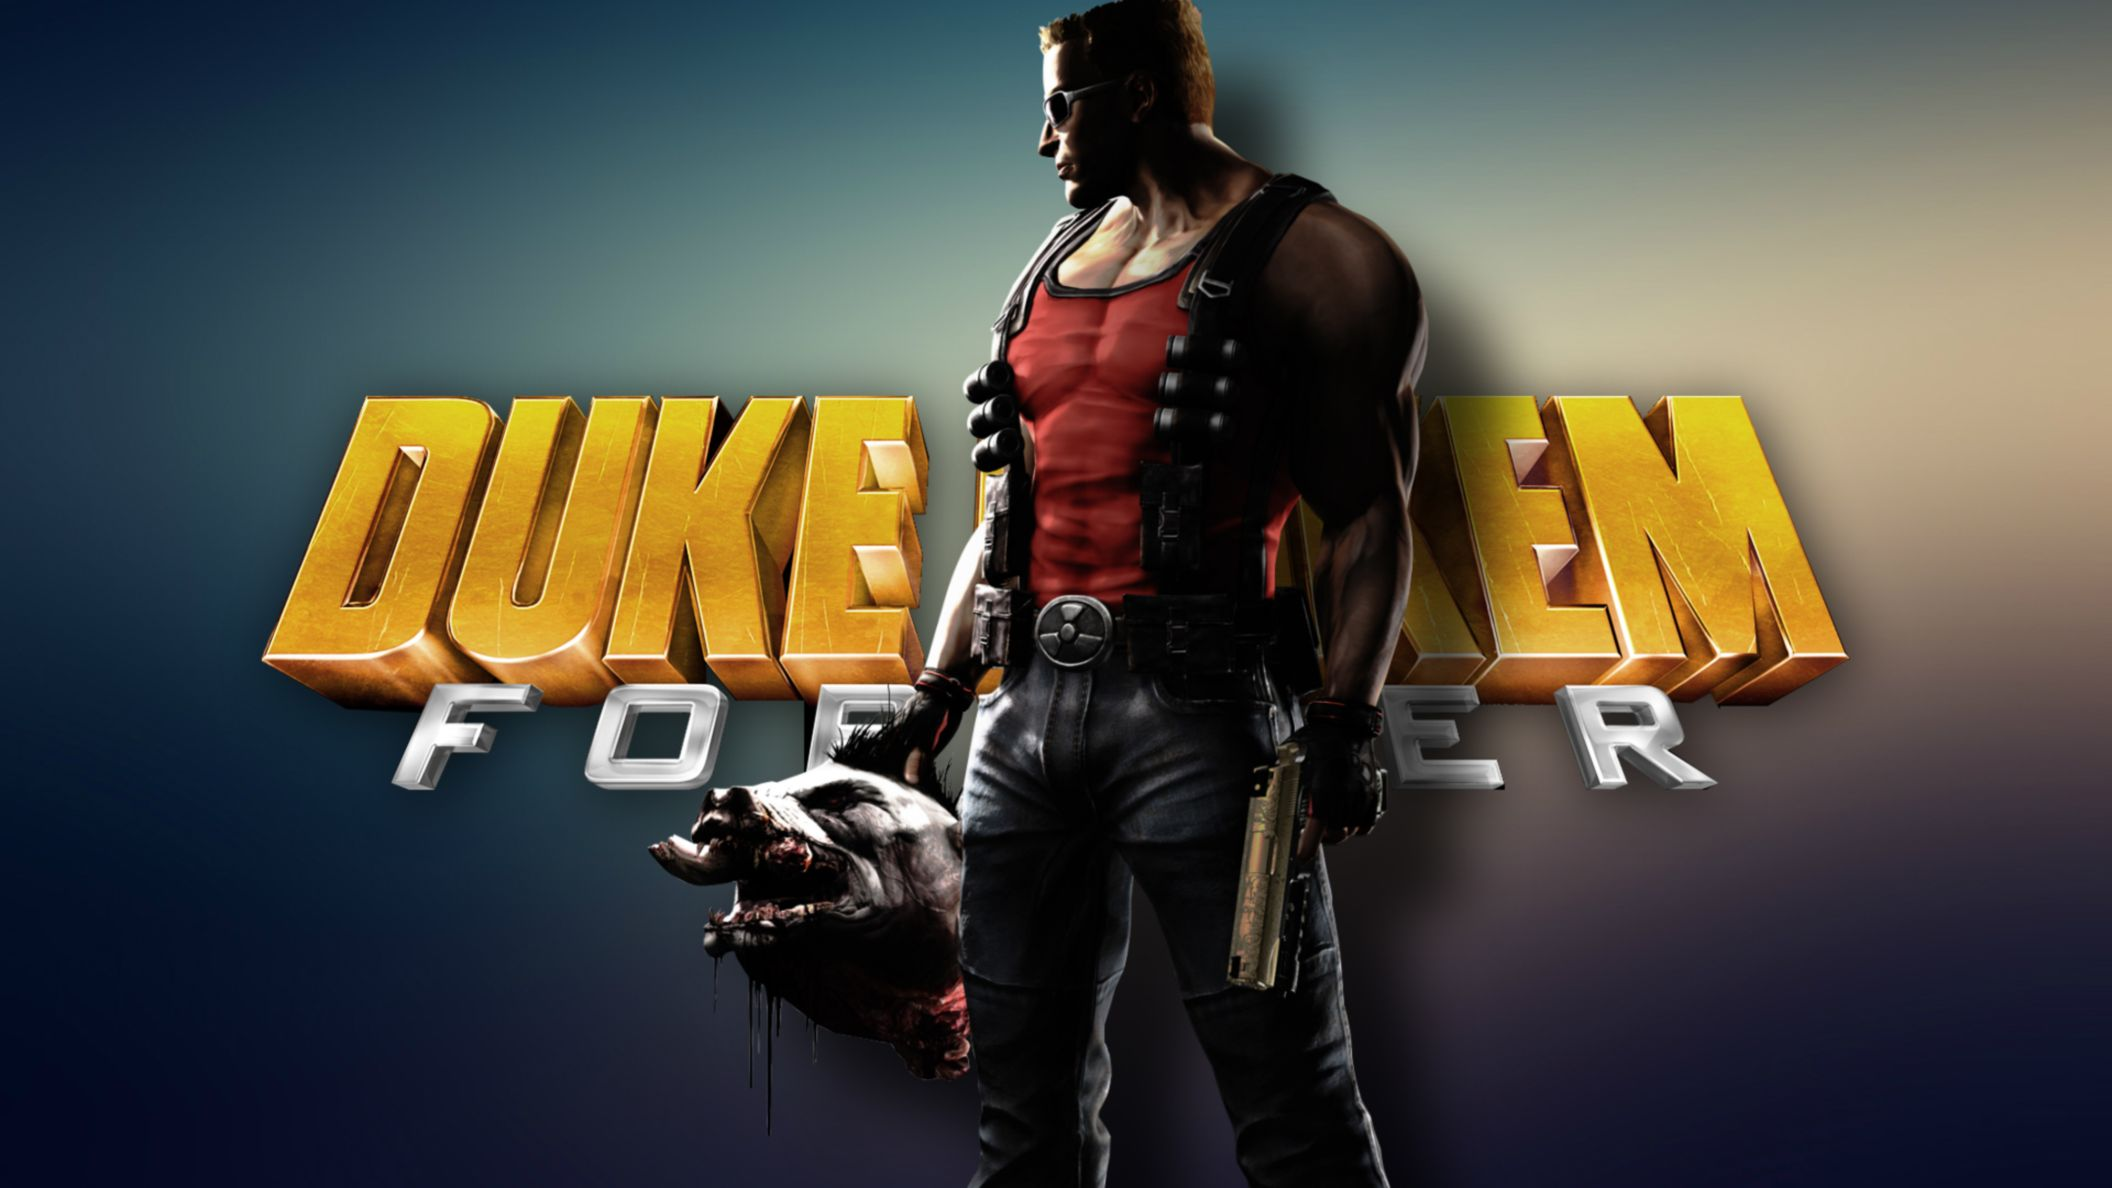 Download free HD Duke Nukem Forever HD HD Wallpaper, image